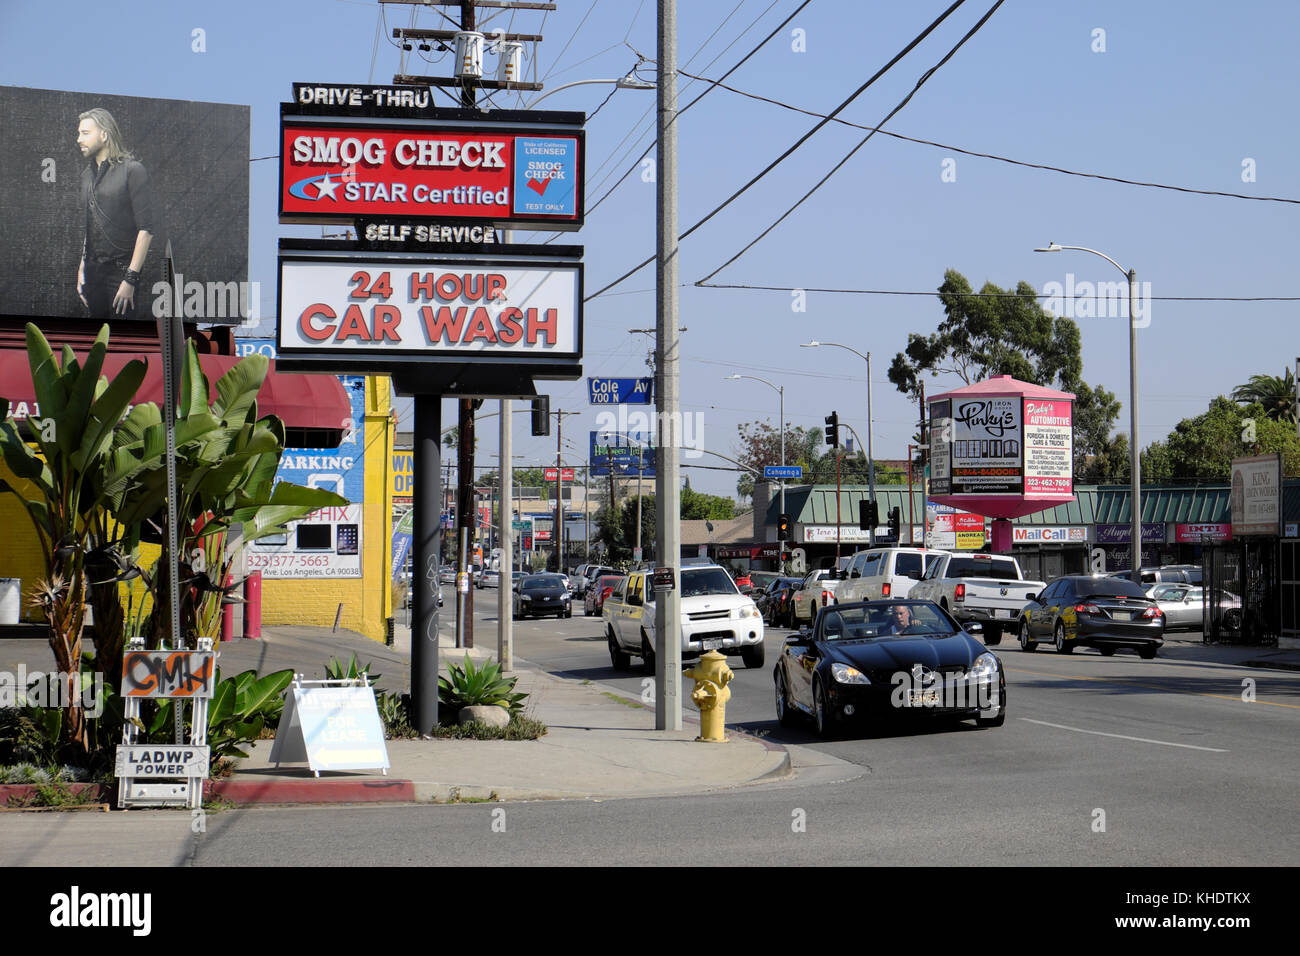 Convertible car and traffic on Melrose Avenue near Cole Ave and Smog Check 24 hour Car Wash sign Hollywood, Los - Stock Image